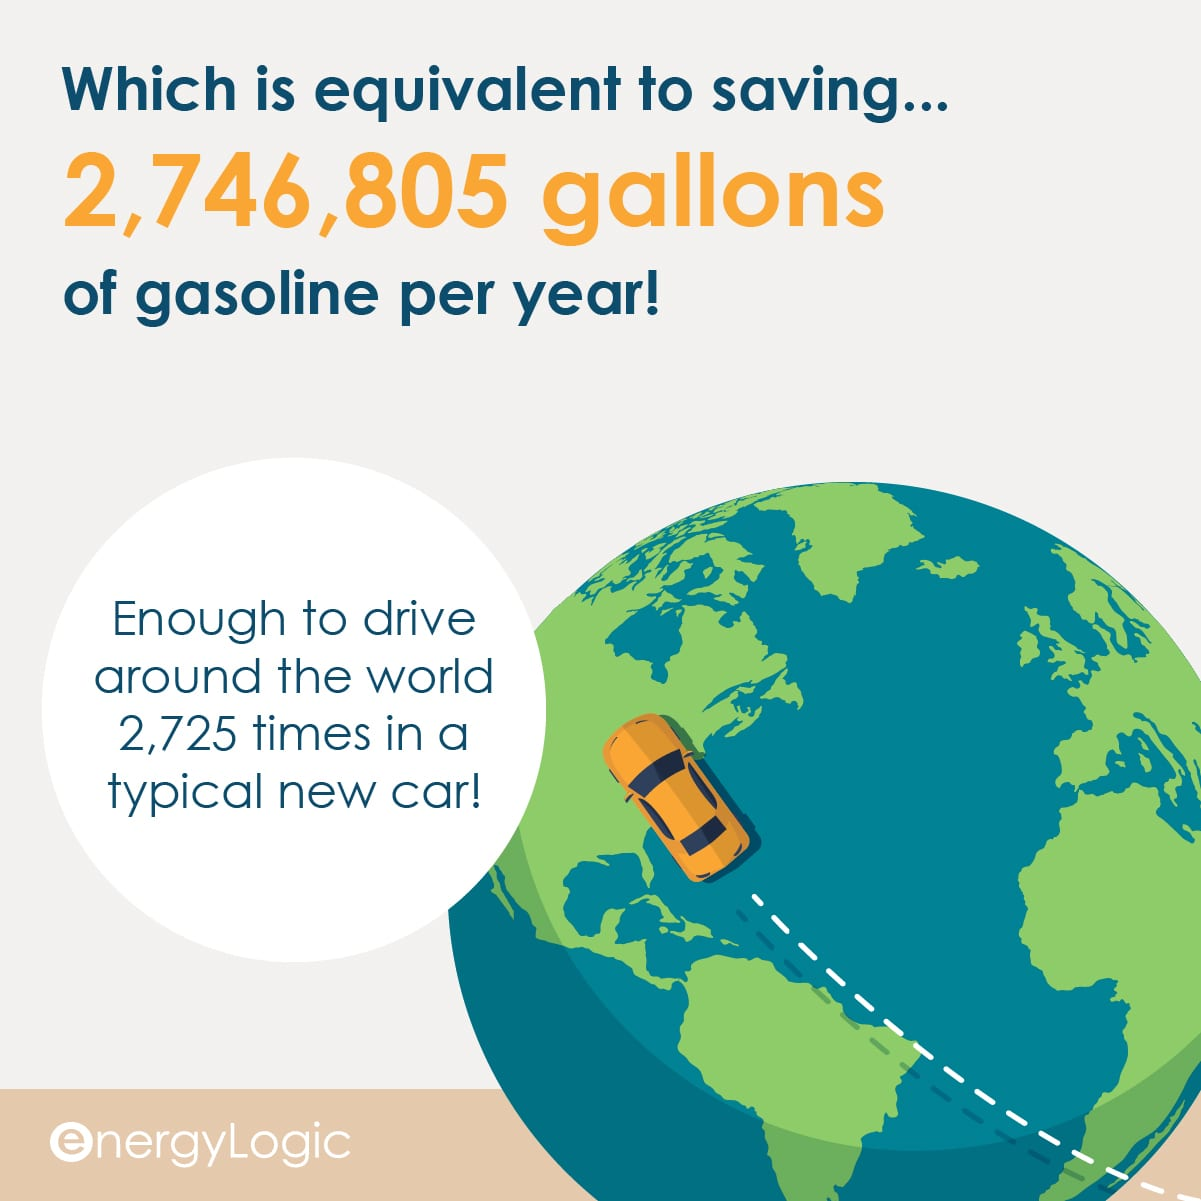 Over 2 million gallons of gasoline per year were saved by EnergyLogic's work in 2020